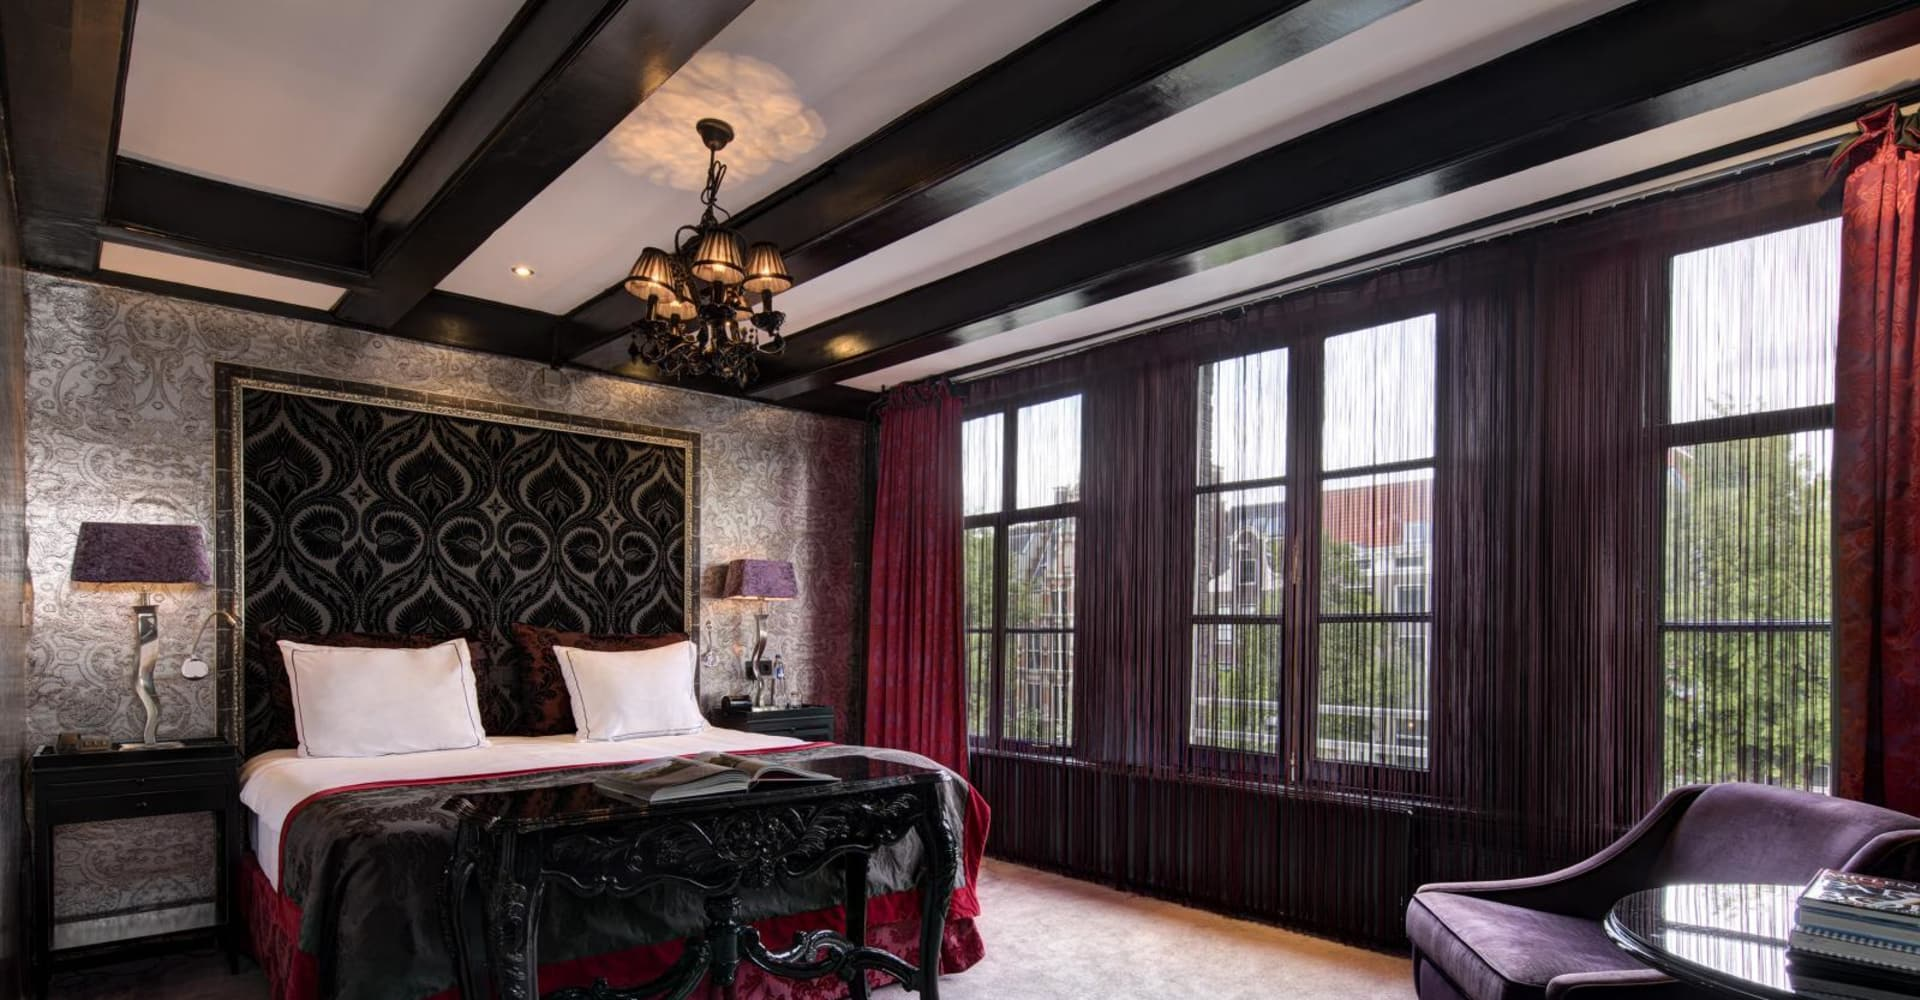 Deluxe room with canal view - The Toren Amsterdam - By the Pavilions